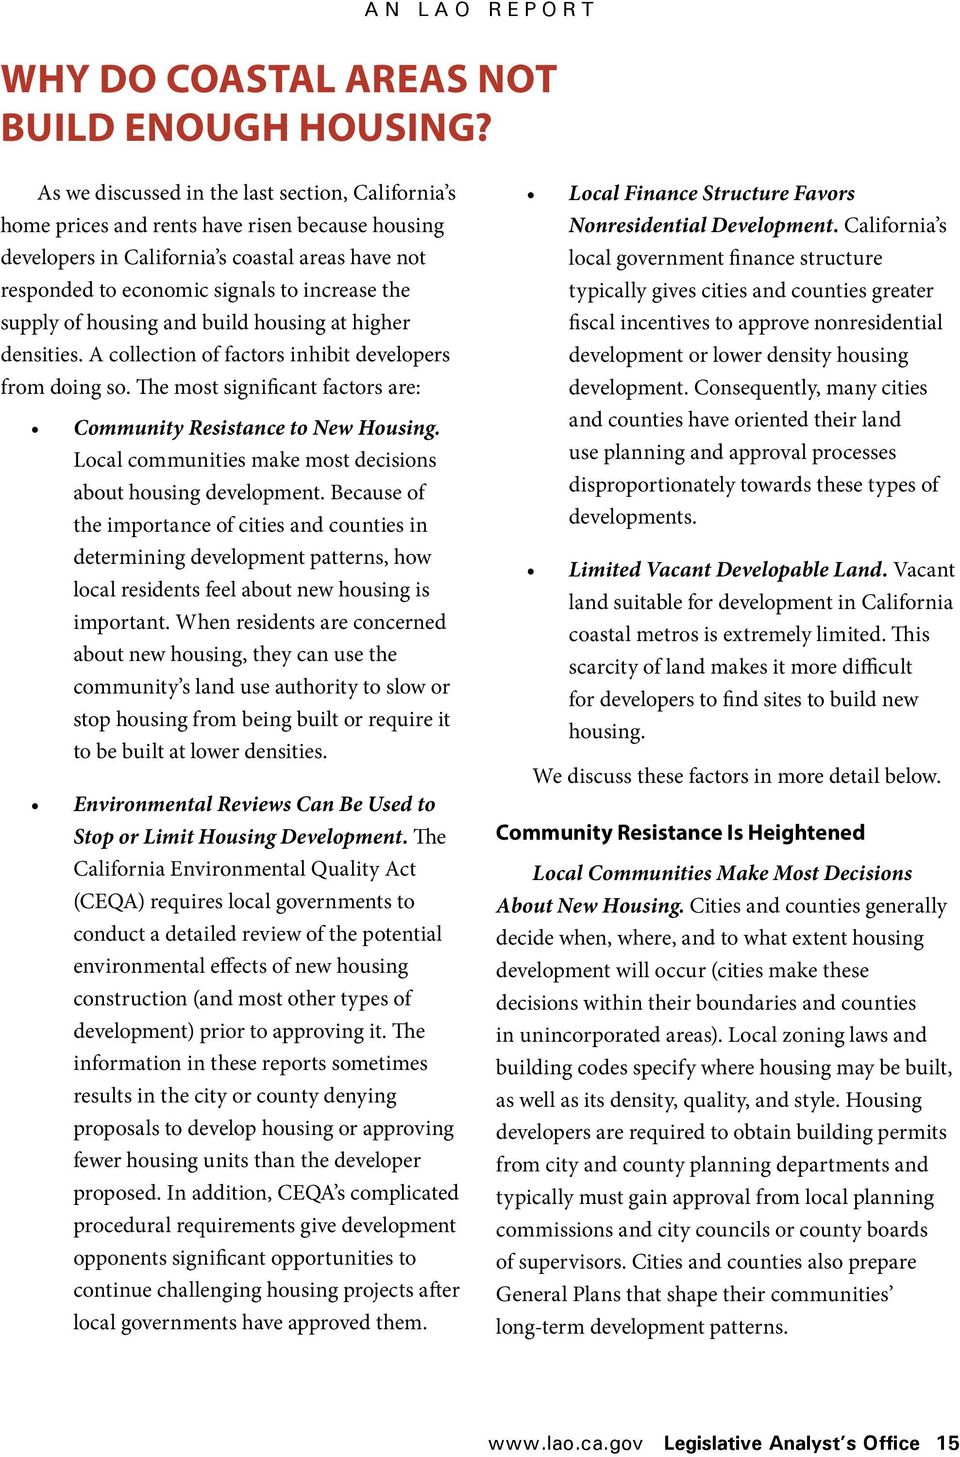 supply of housing and build housing at higher densities. A collection of factors inhibit developers from doing so. The most significant factors are: Community Resistance to New Housing.